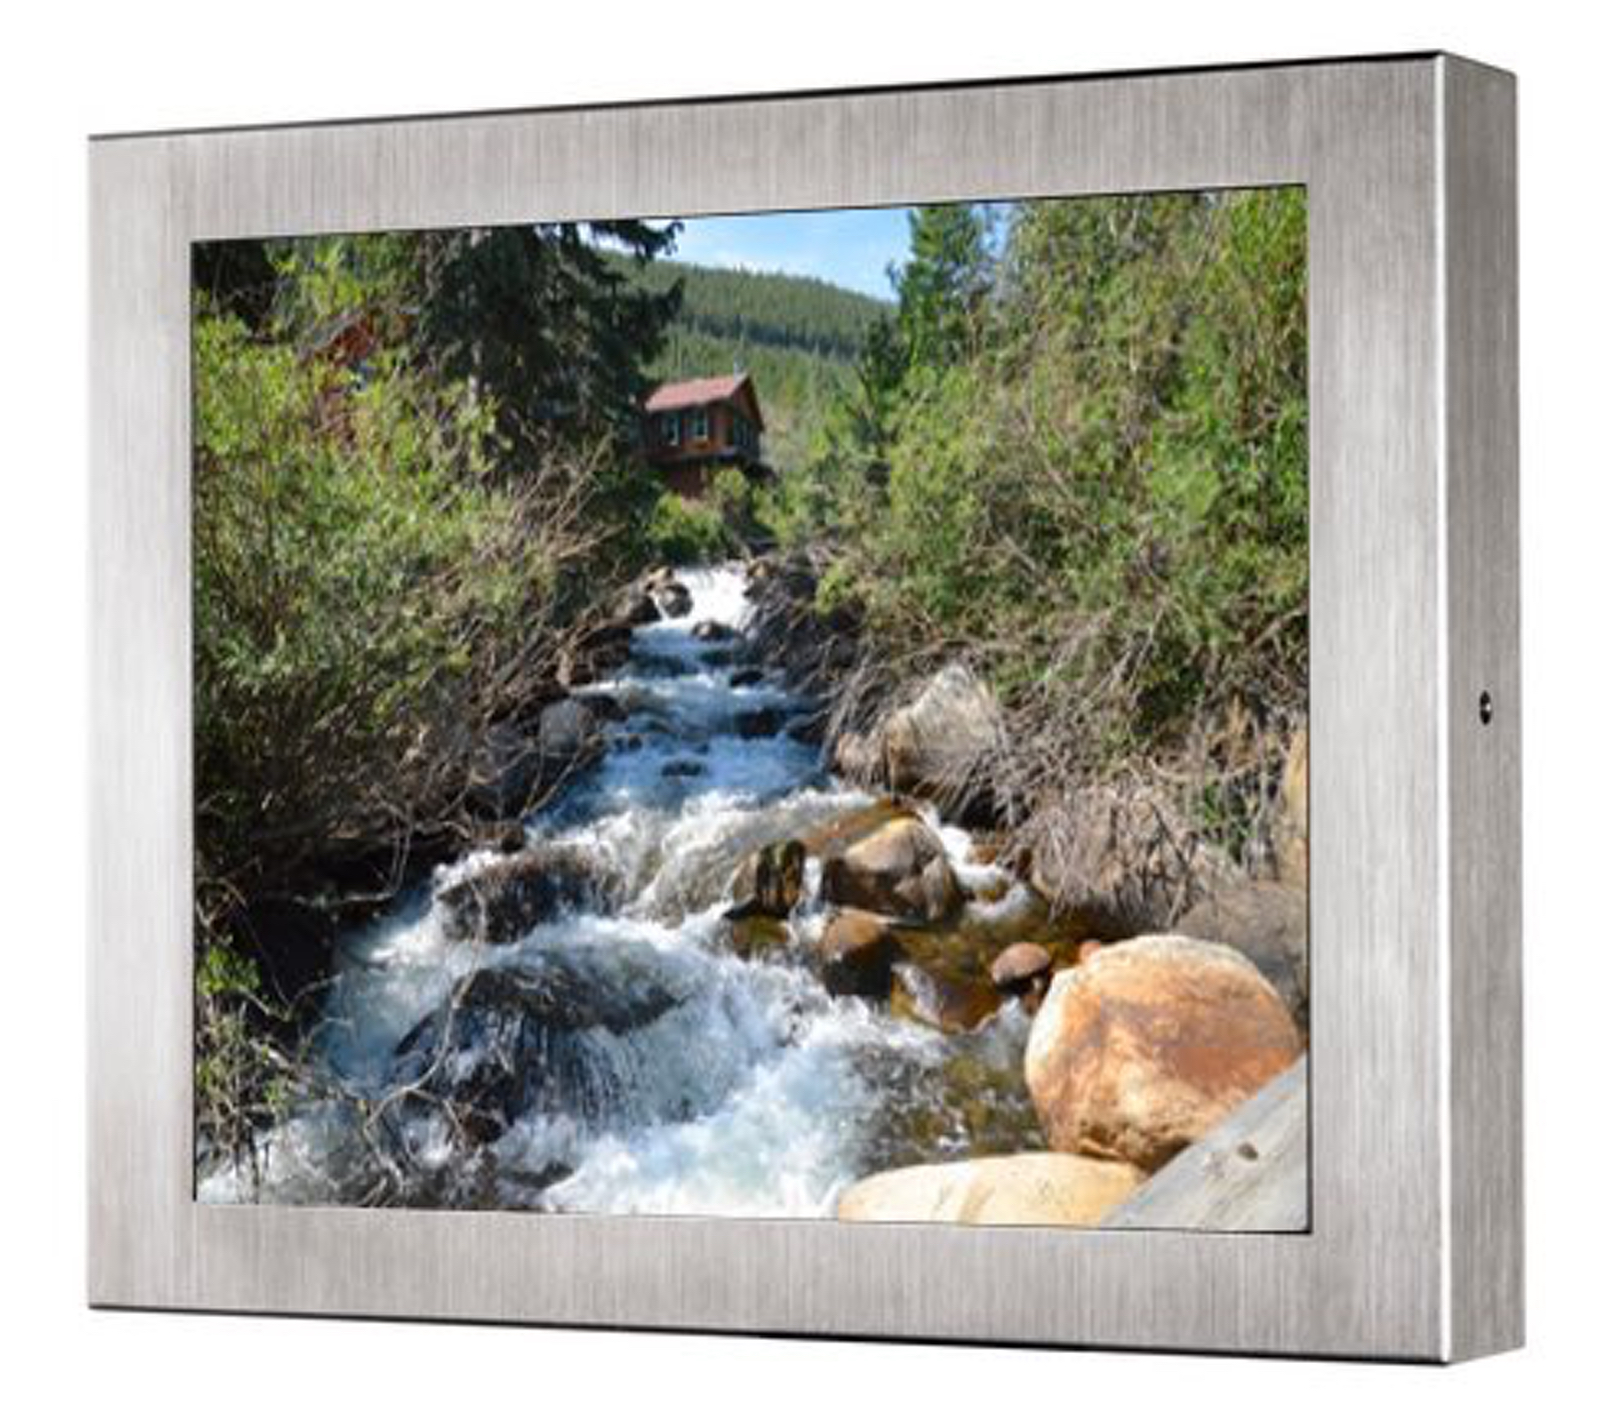 19-inch Waterproof Monitor Available